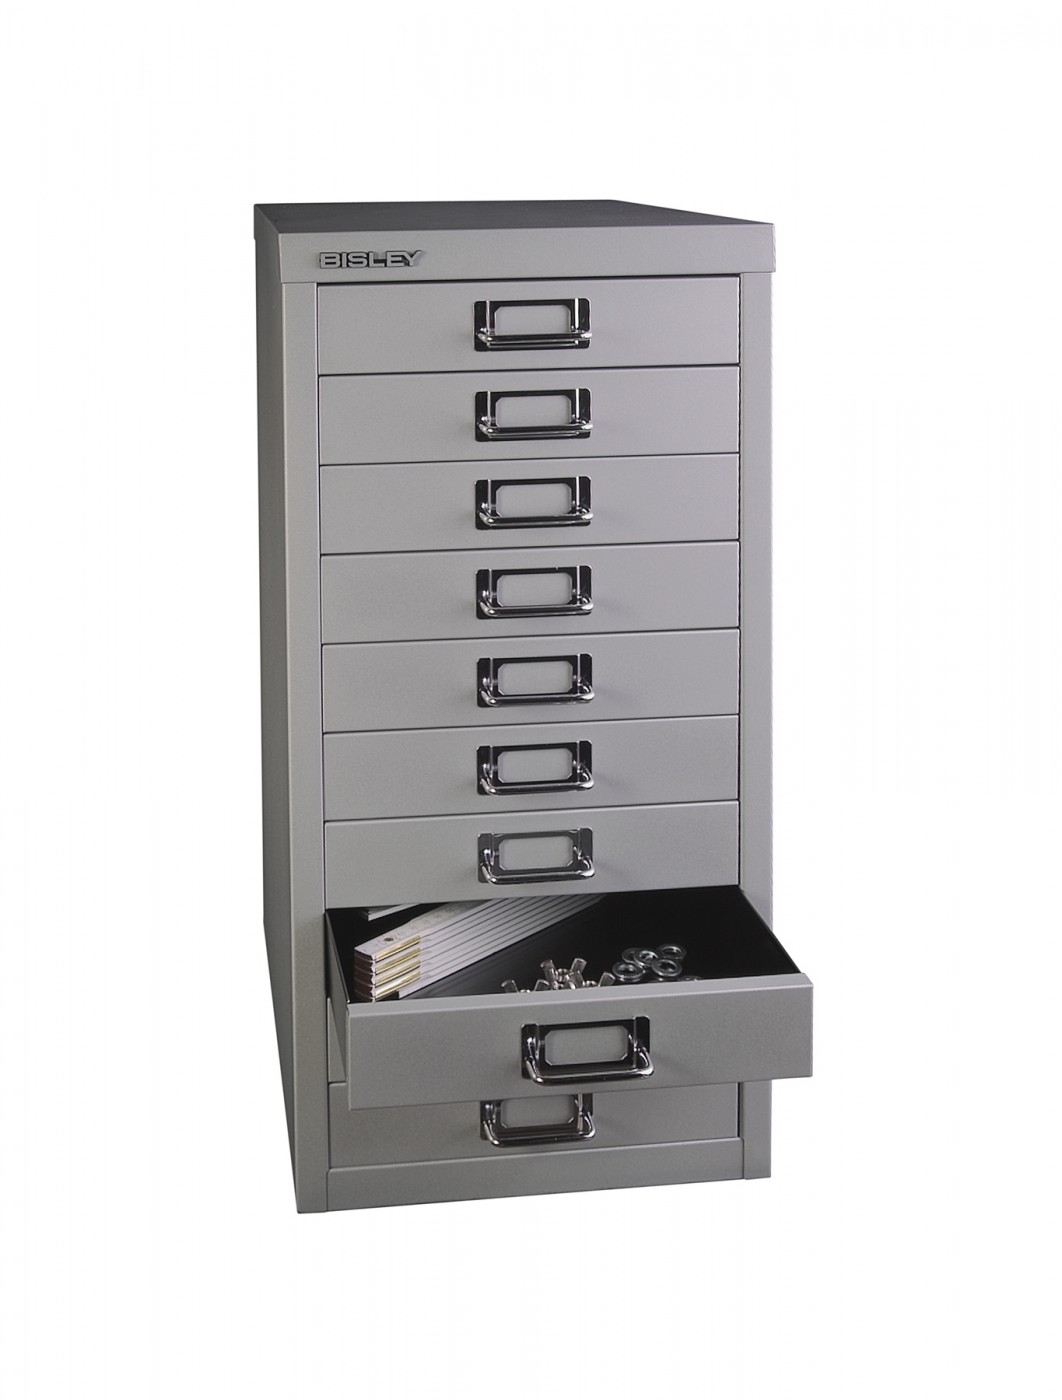 bisley 10 drawer soho multi drawer b10md 121 office furniture